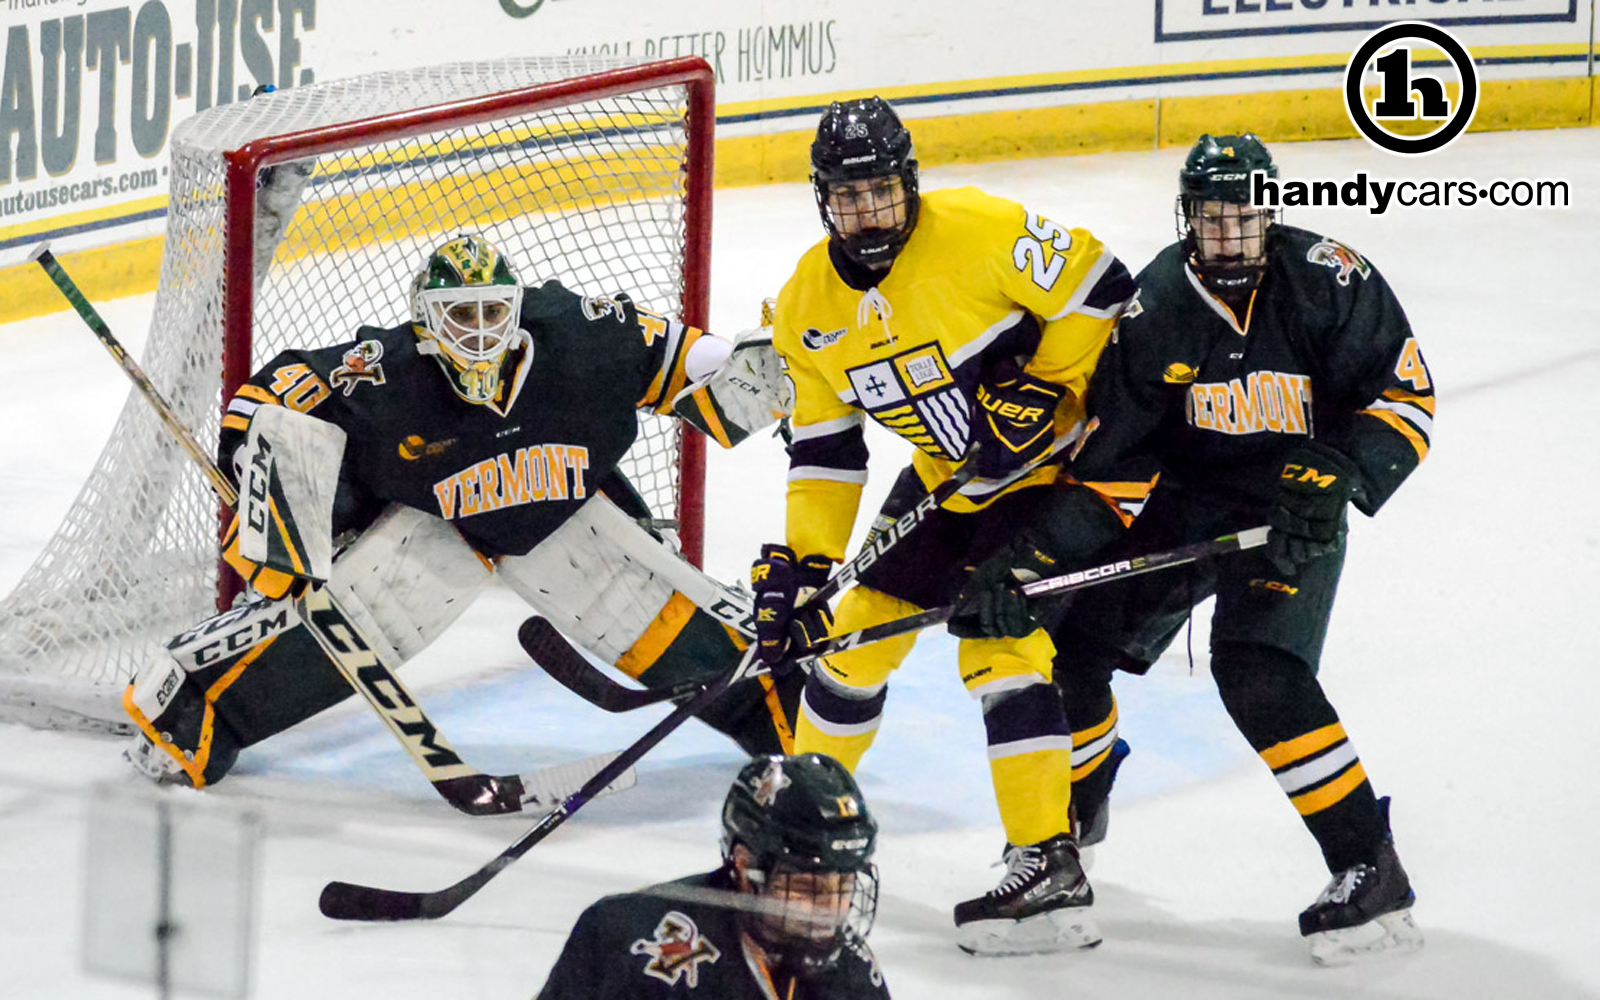 Image result for vermont hockey 2018